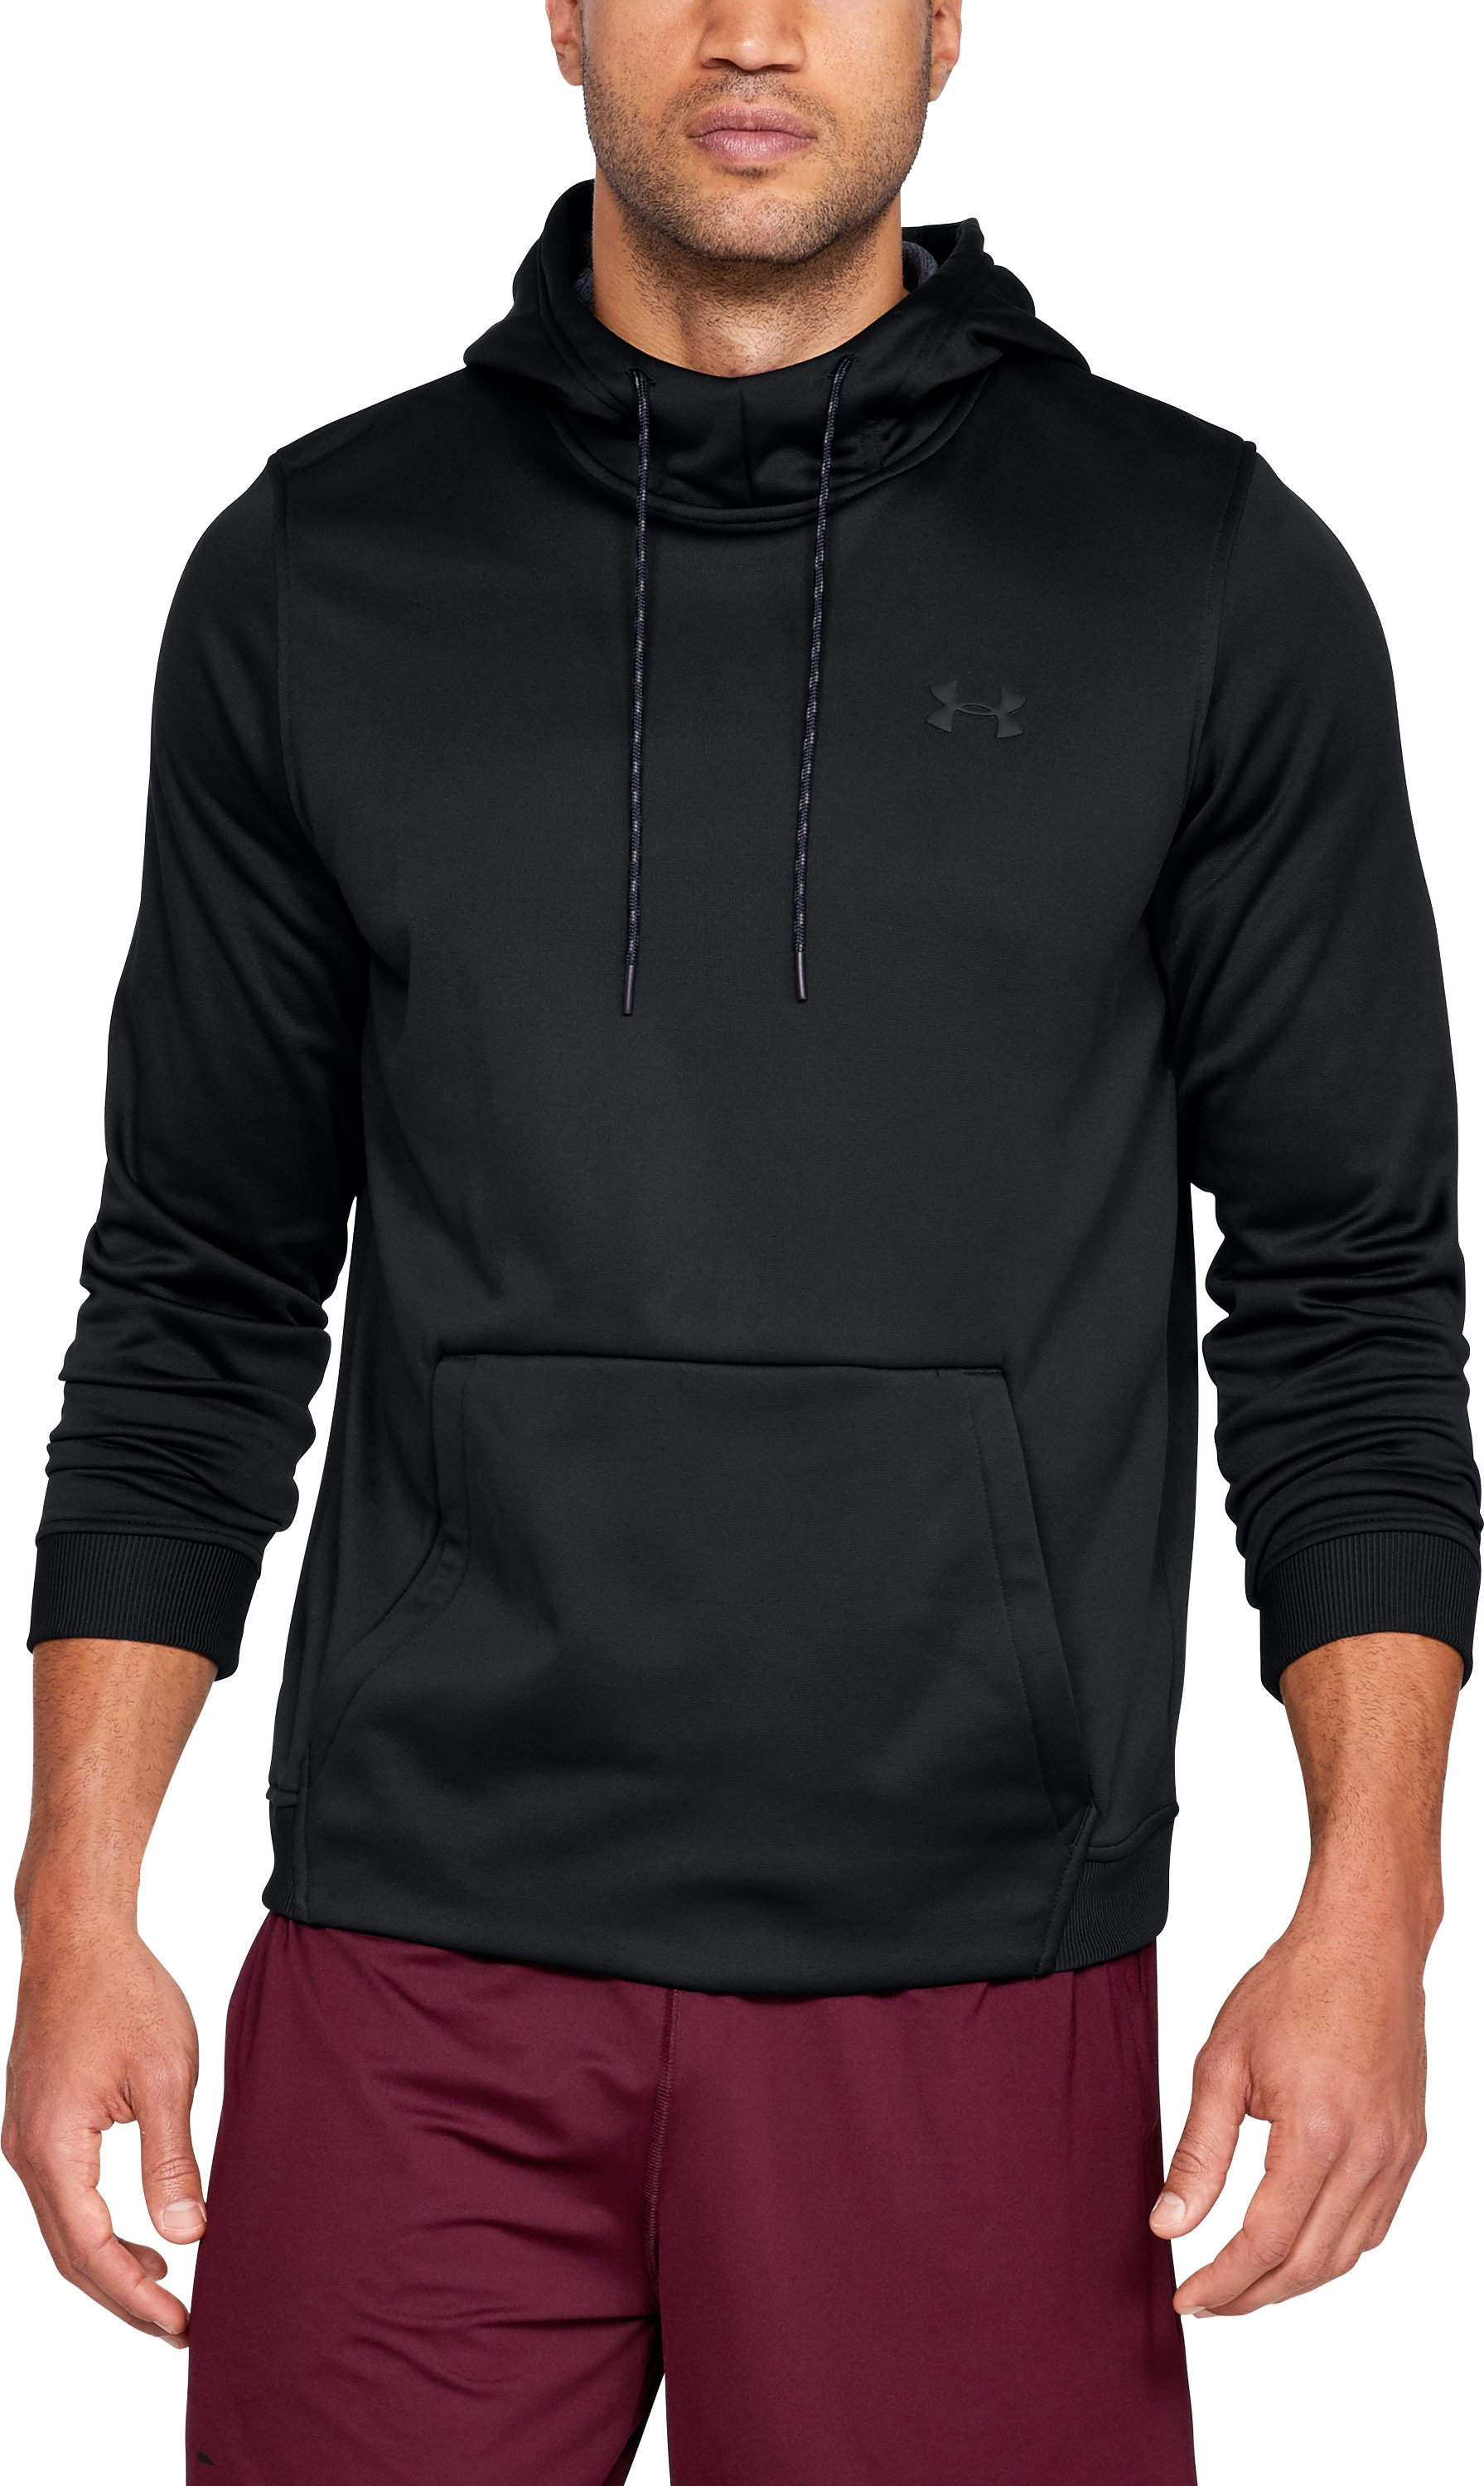 ARMOUR FLEECE PO HOODIE, Black , zoomed